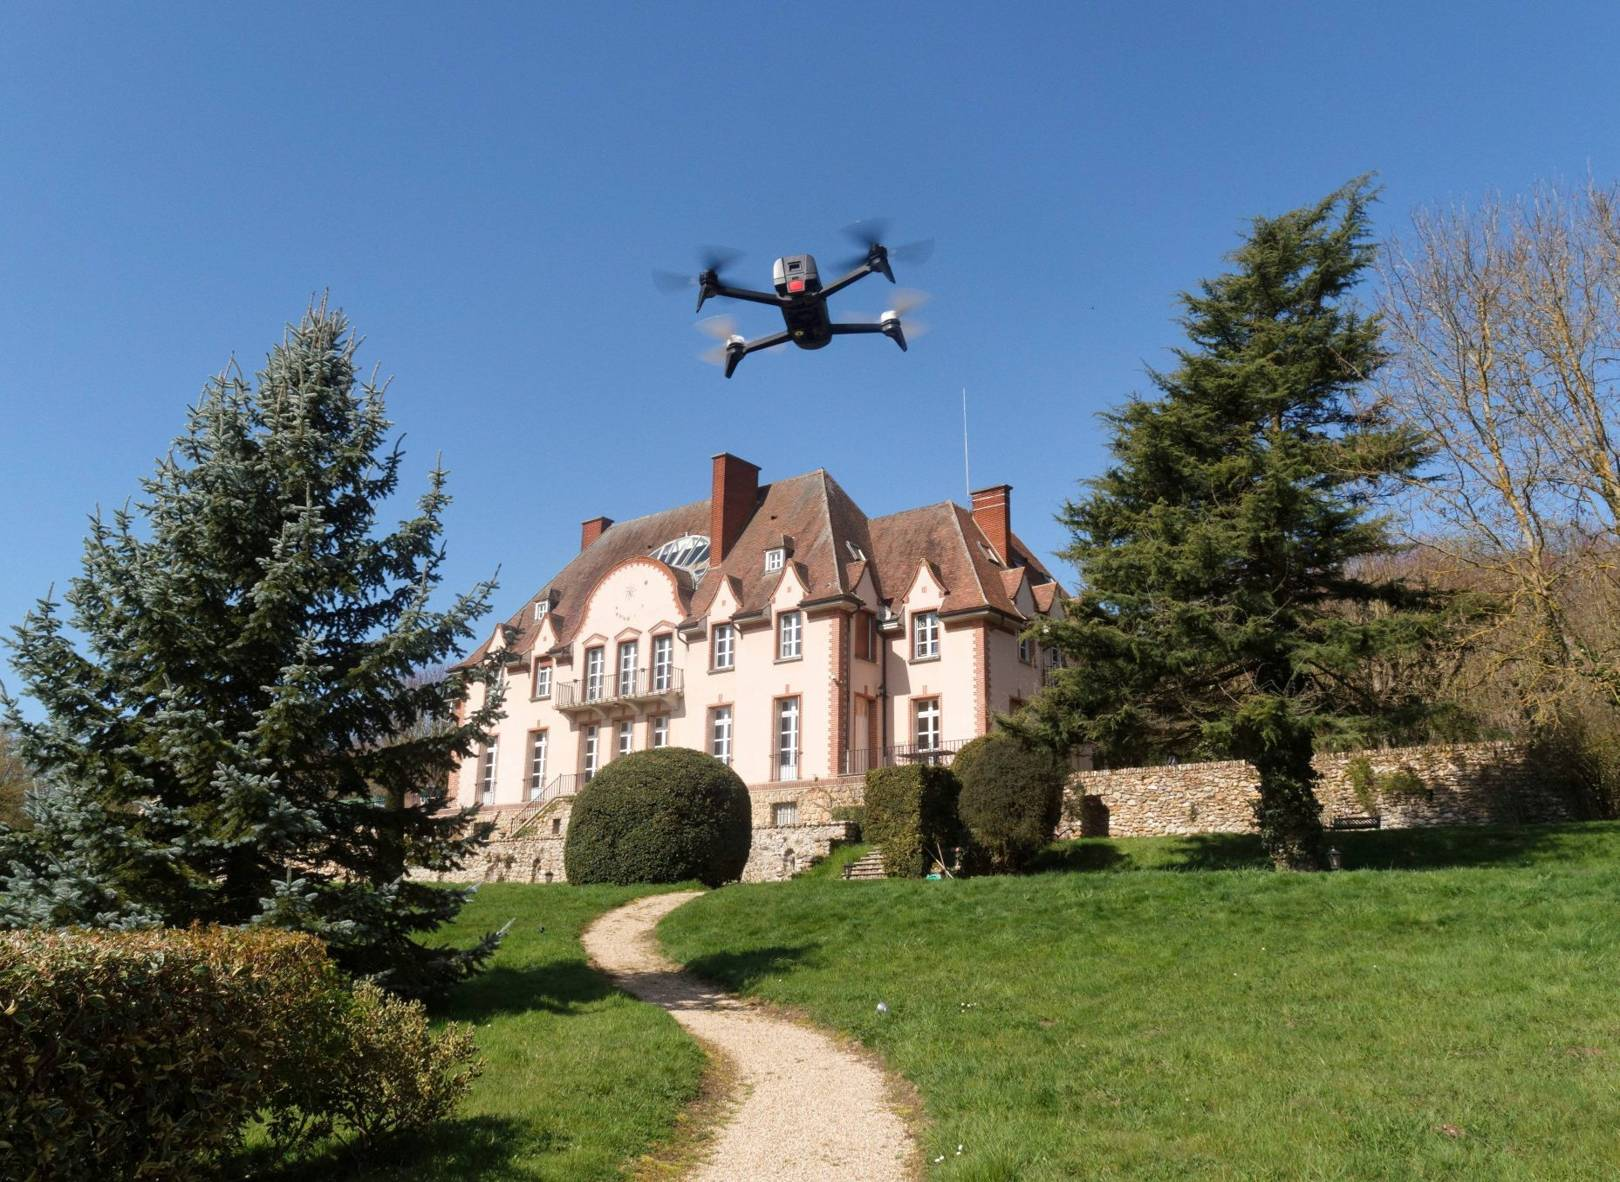 Create a 3D model of your house with this drone